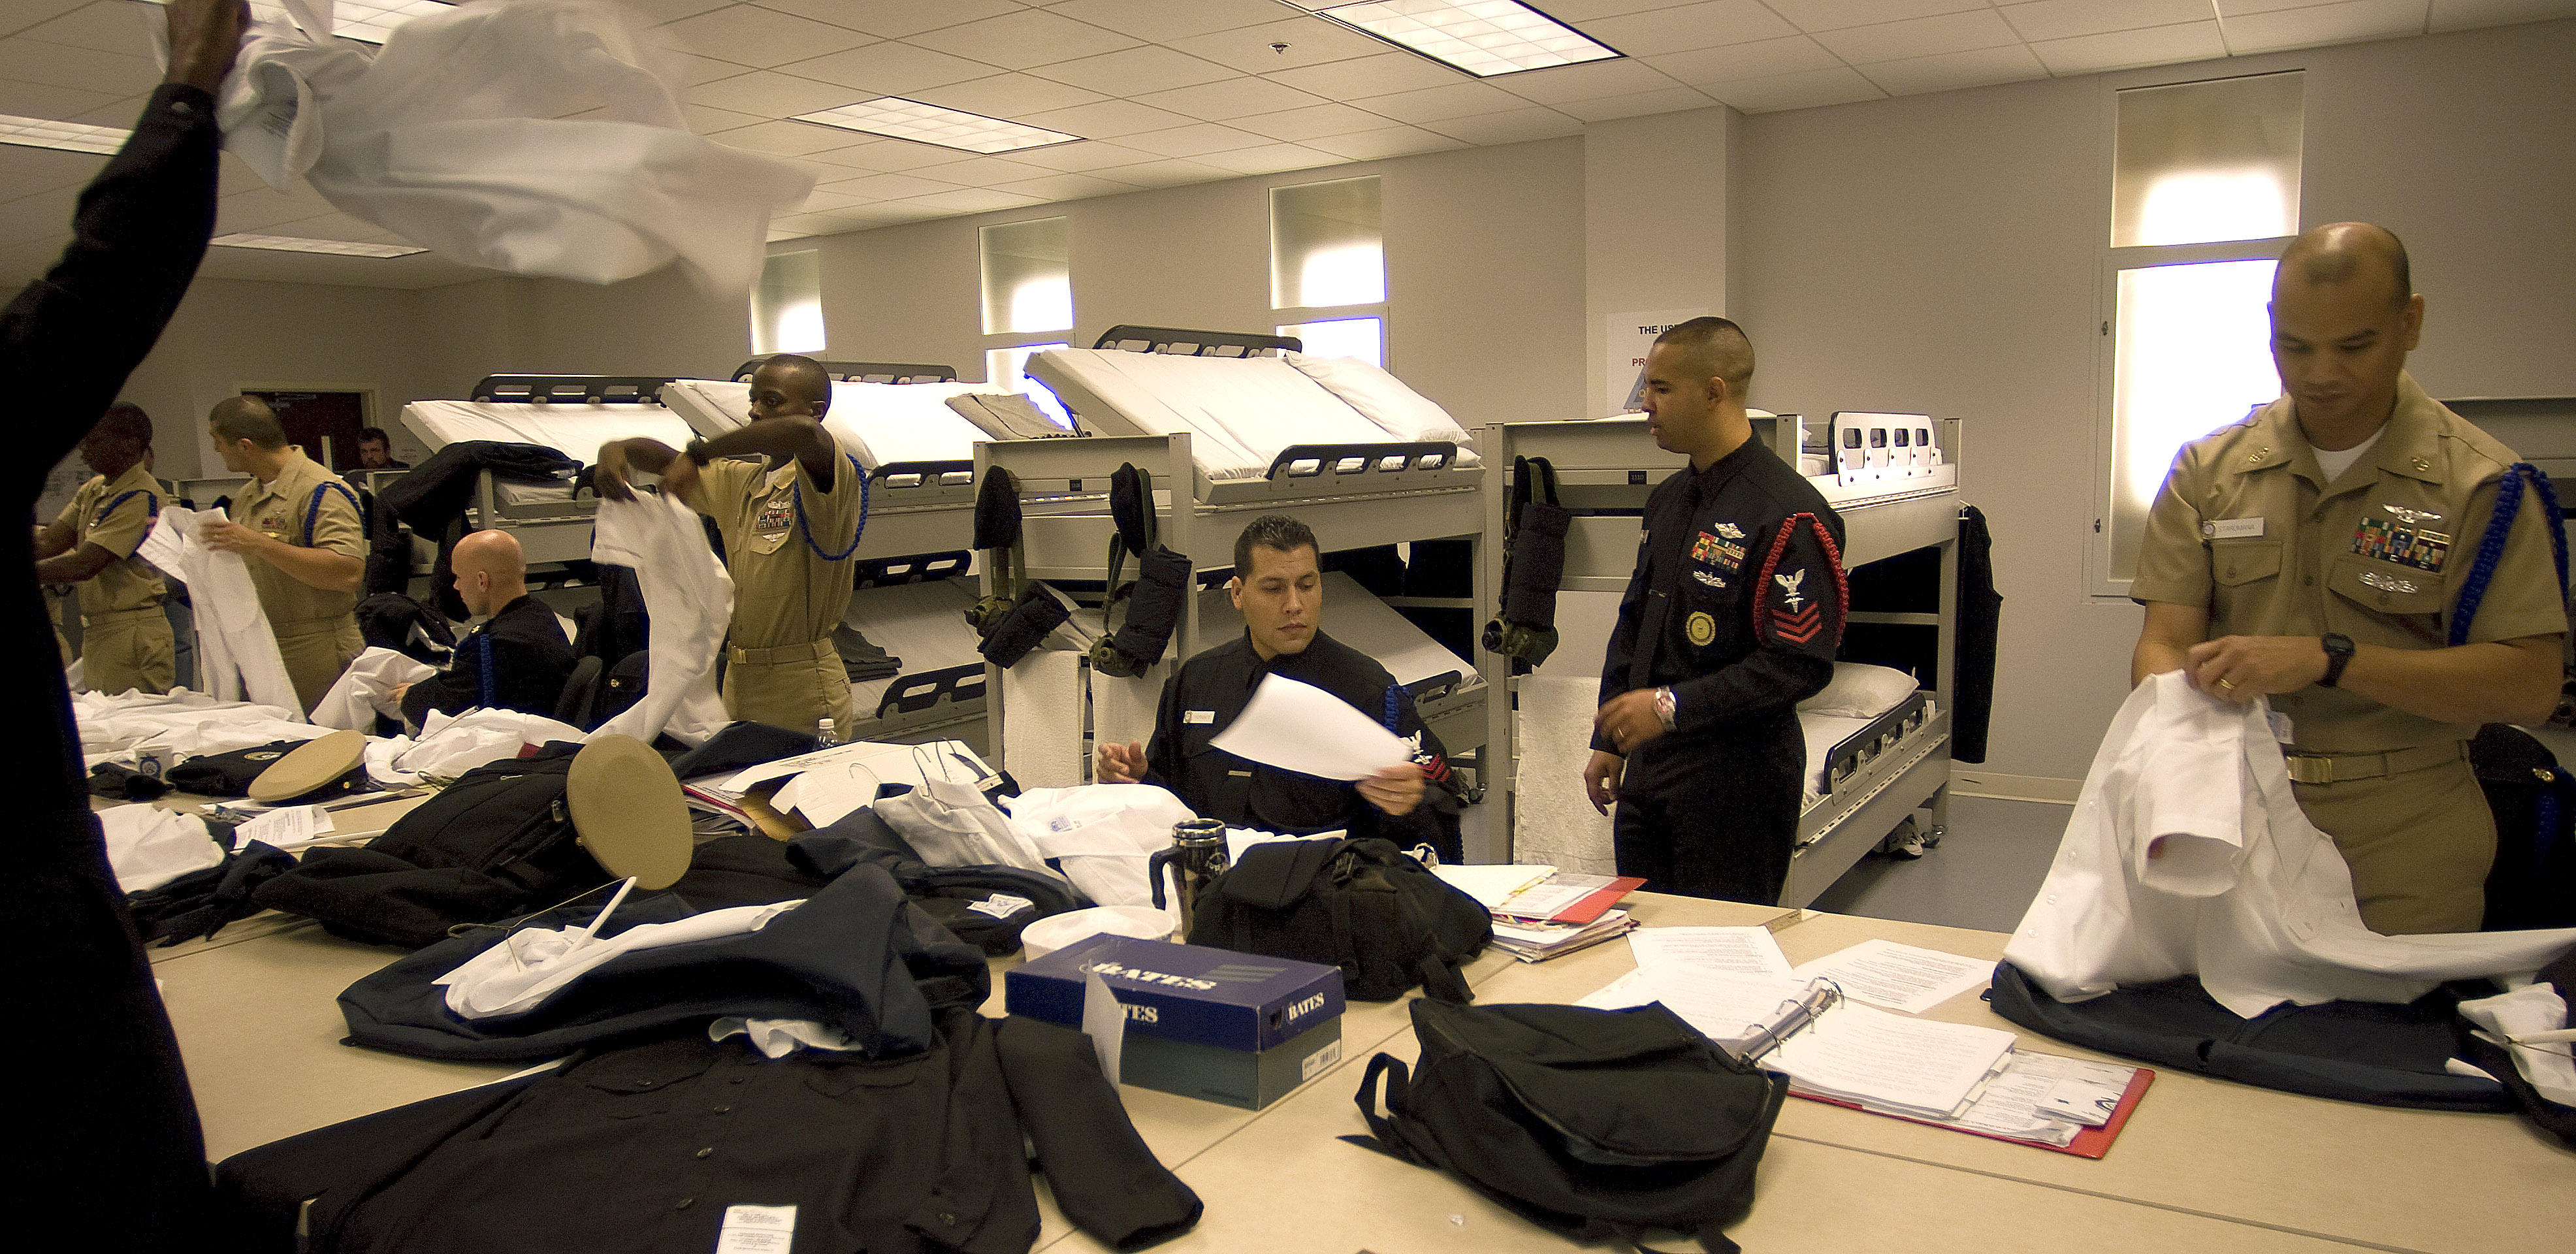 ... stencil and store uniforms at Recruit Division Commander (RDC).jpg